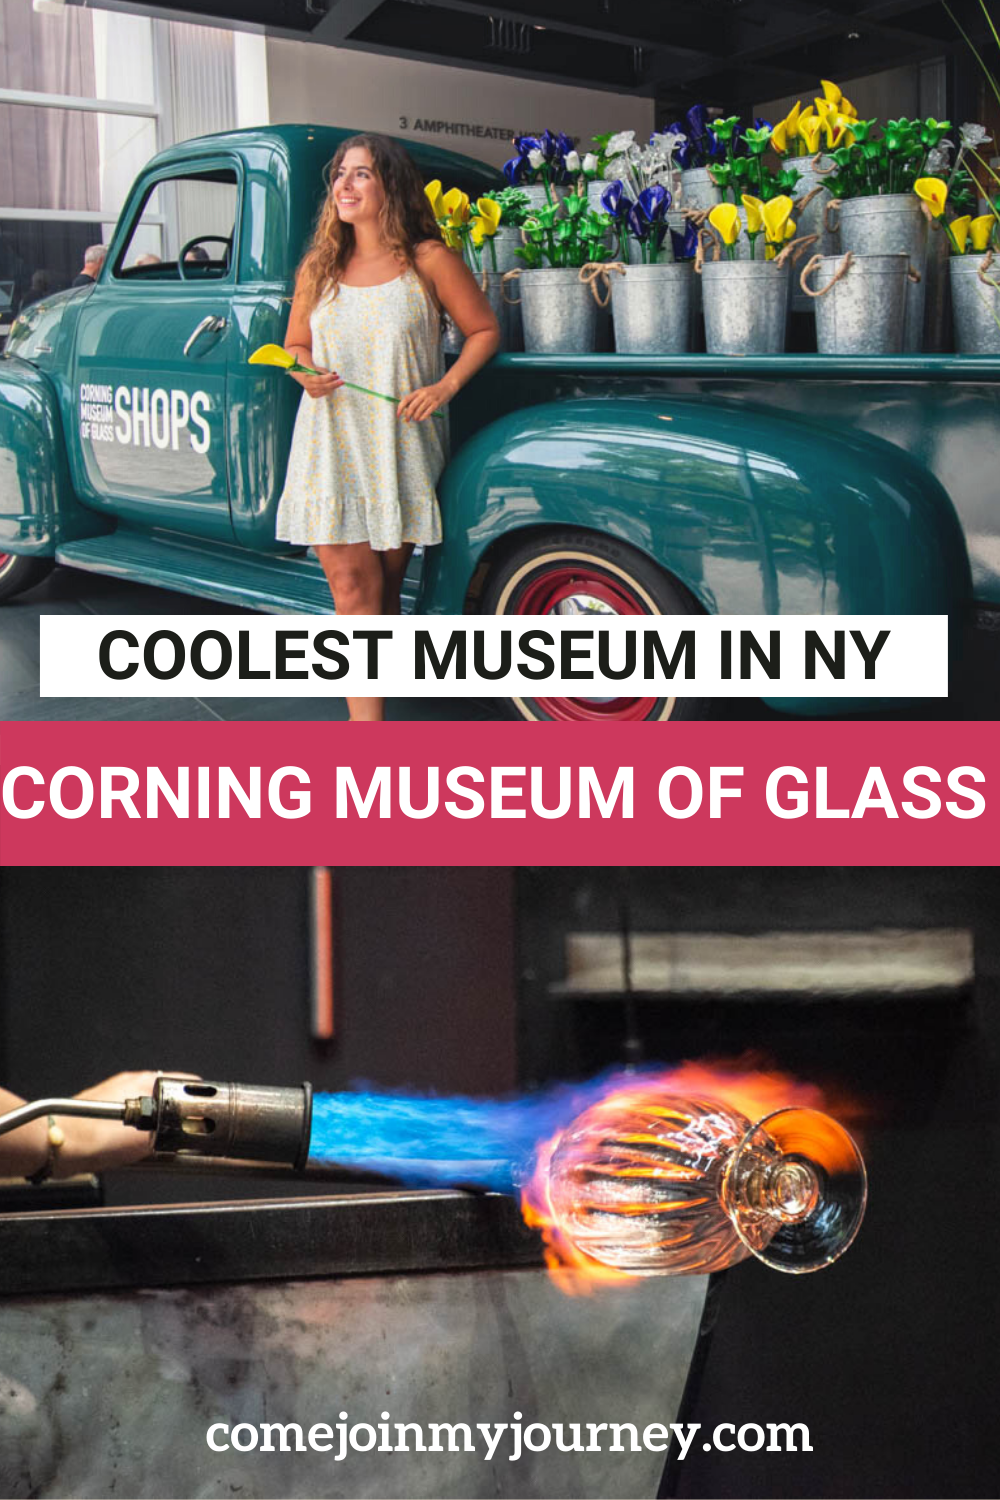 Corning Museum of Glass Exterior with girl